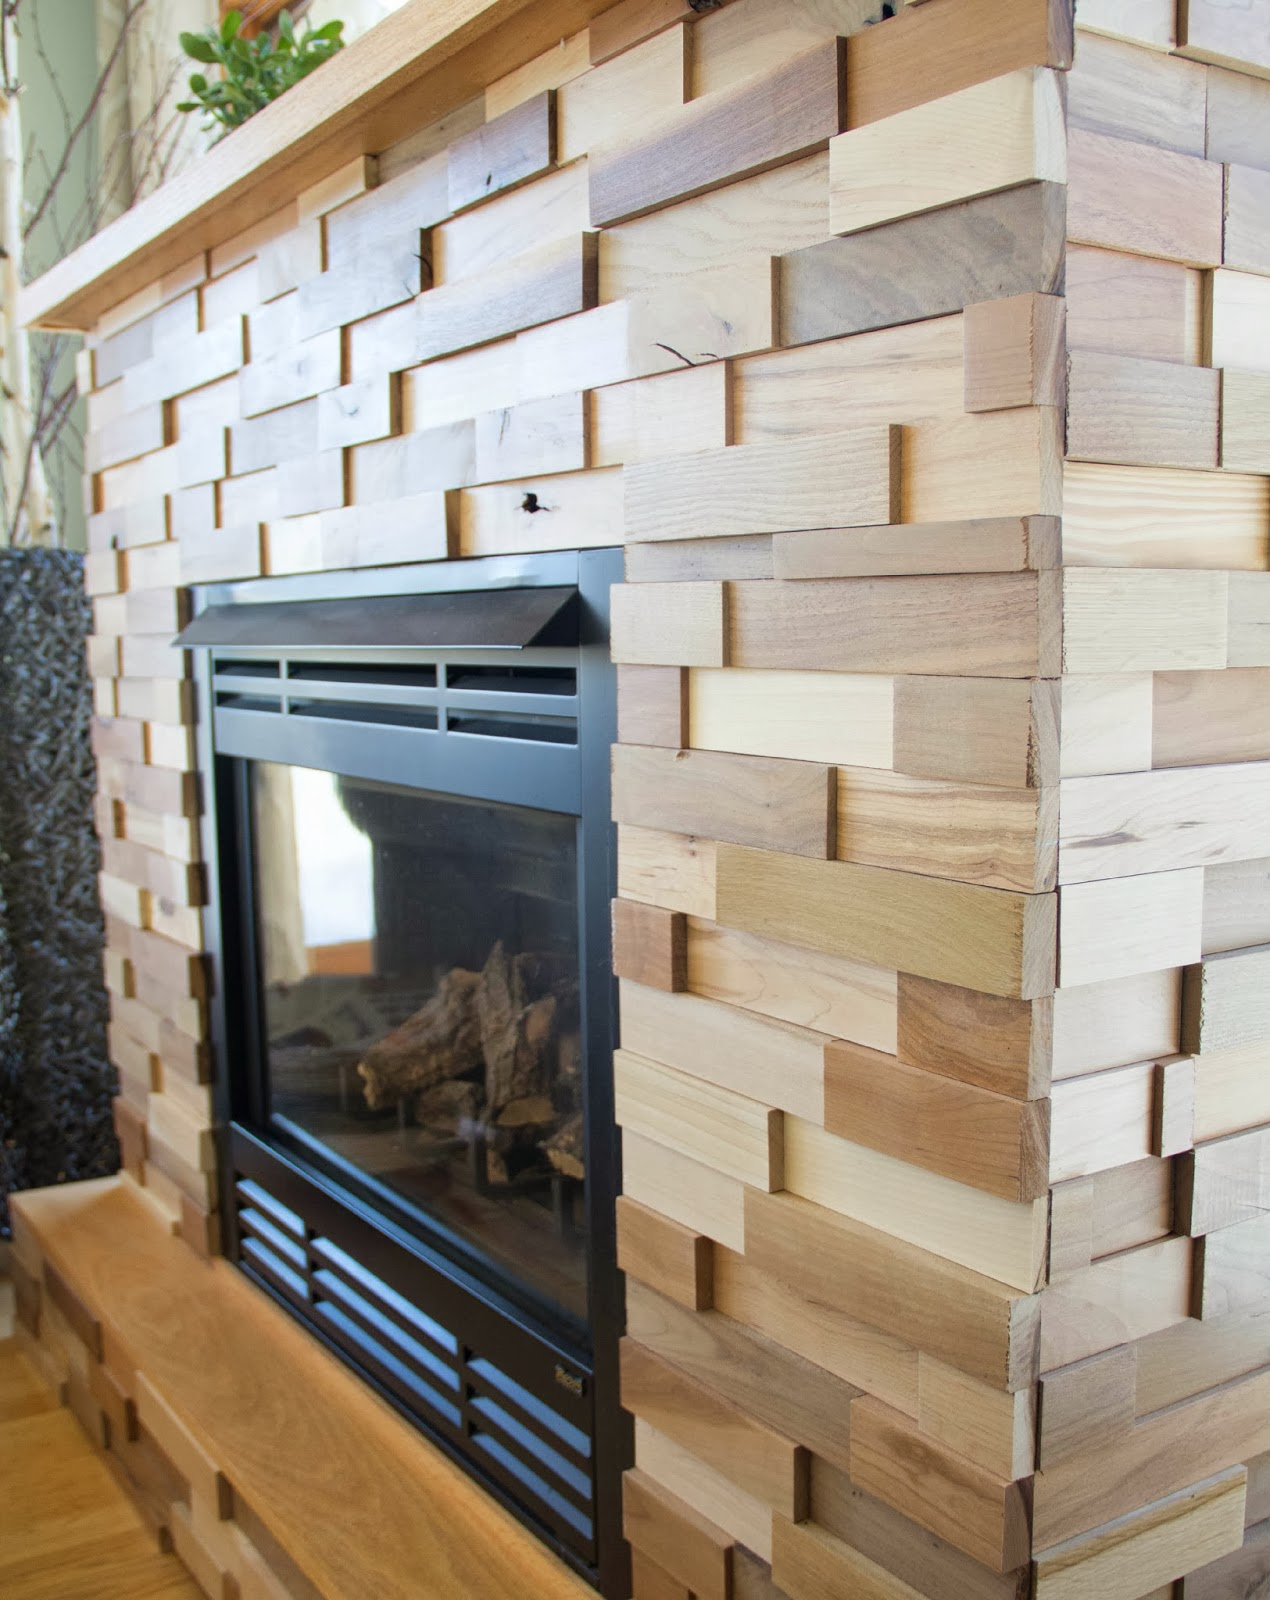 Cover Brick Fireplace With Wood Panels That Diy Party Diy Show Off Diy Decorating And Home